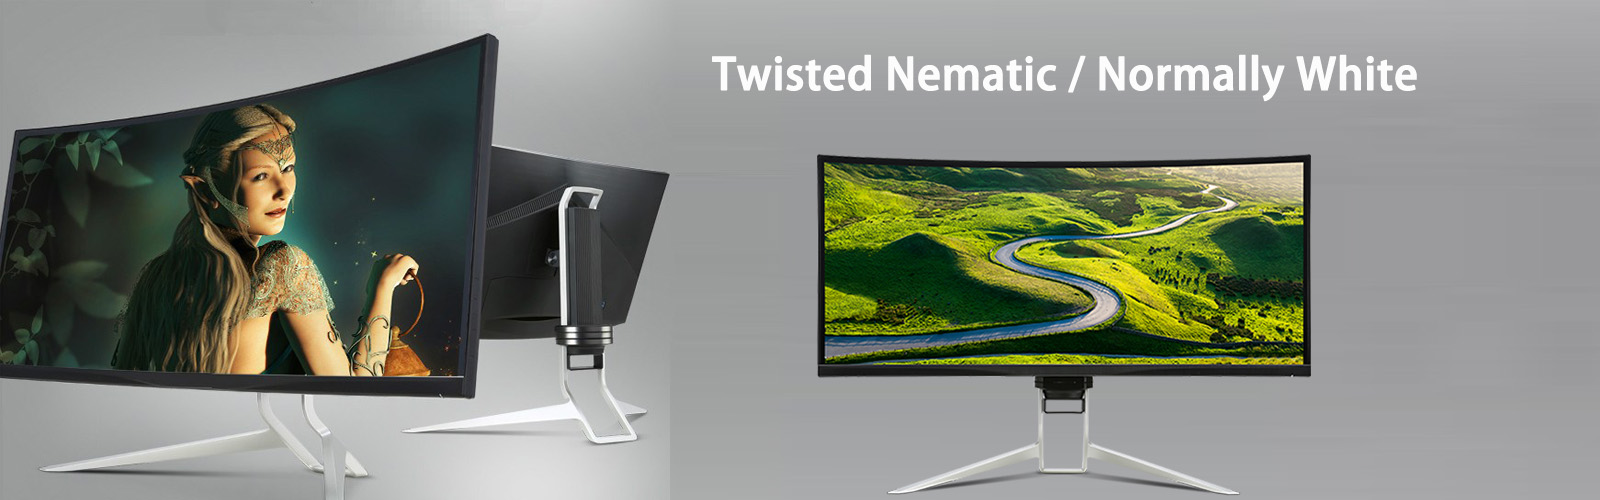 Twisted Nematic normally white BANNER